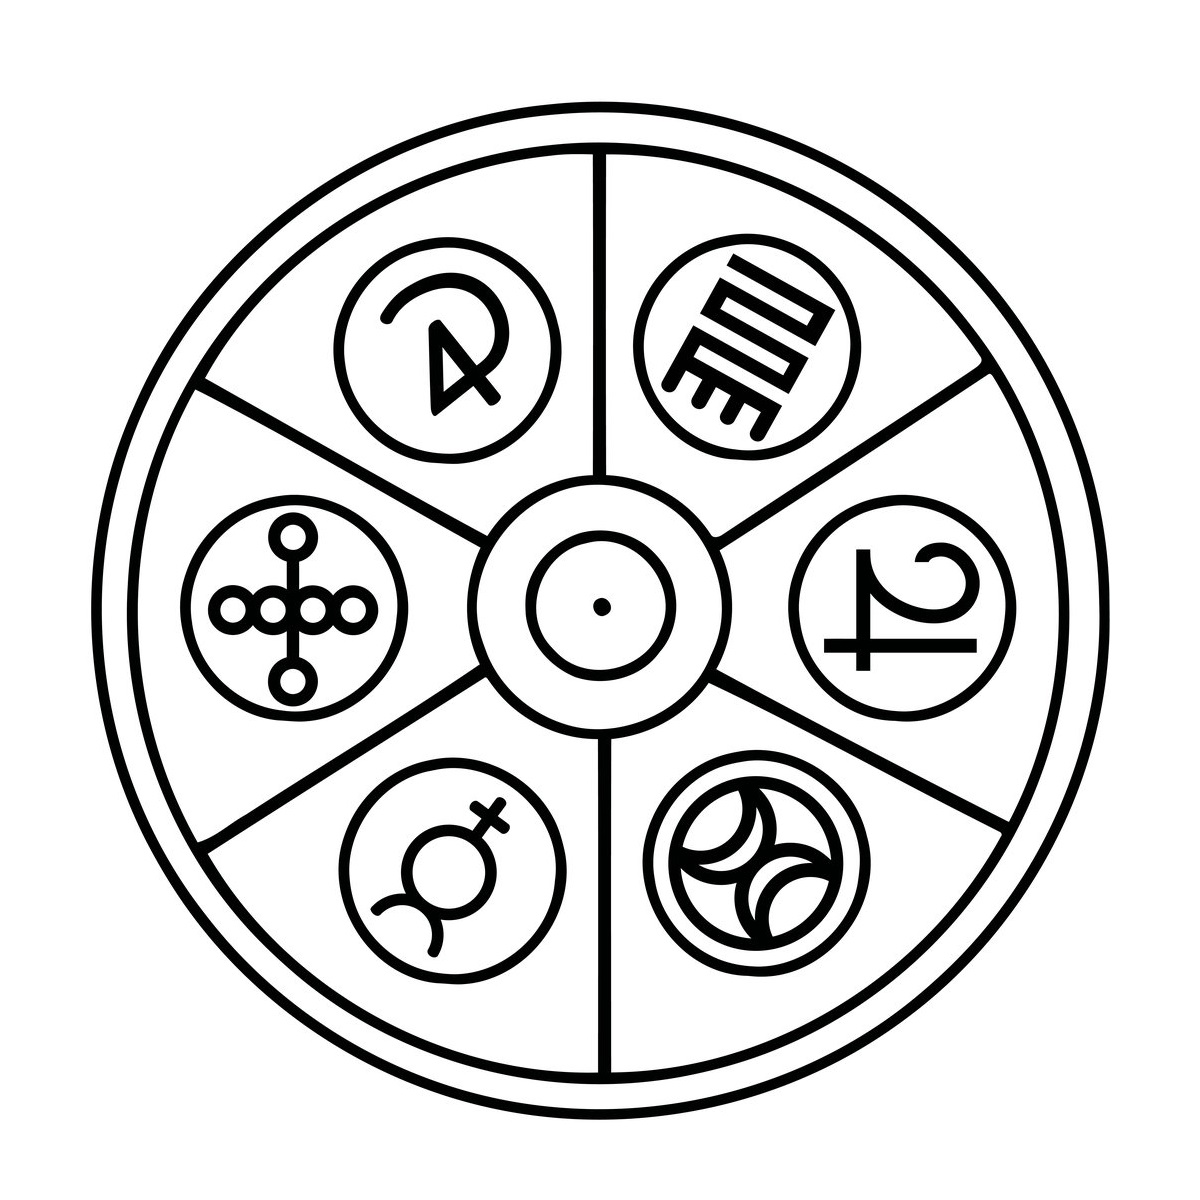 Merlin circle the sorcerers apprentice wiki fandom powered by merlin circle the sorcerers apprentice wiki fandom powered by wikia biocorpaavc Choice Image